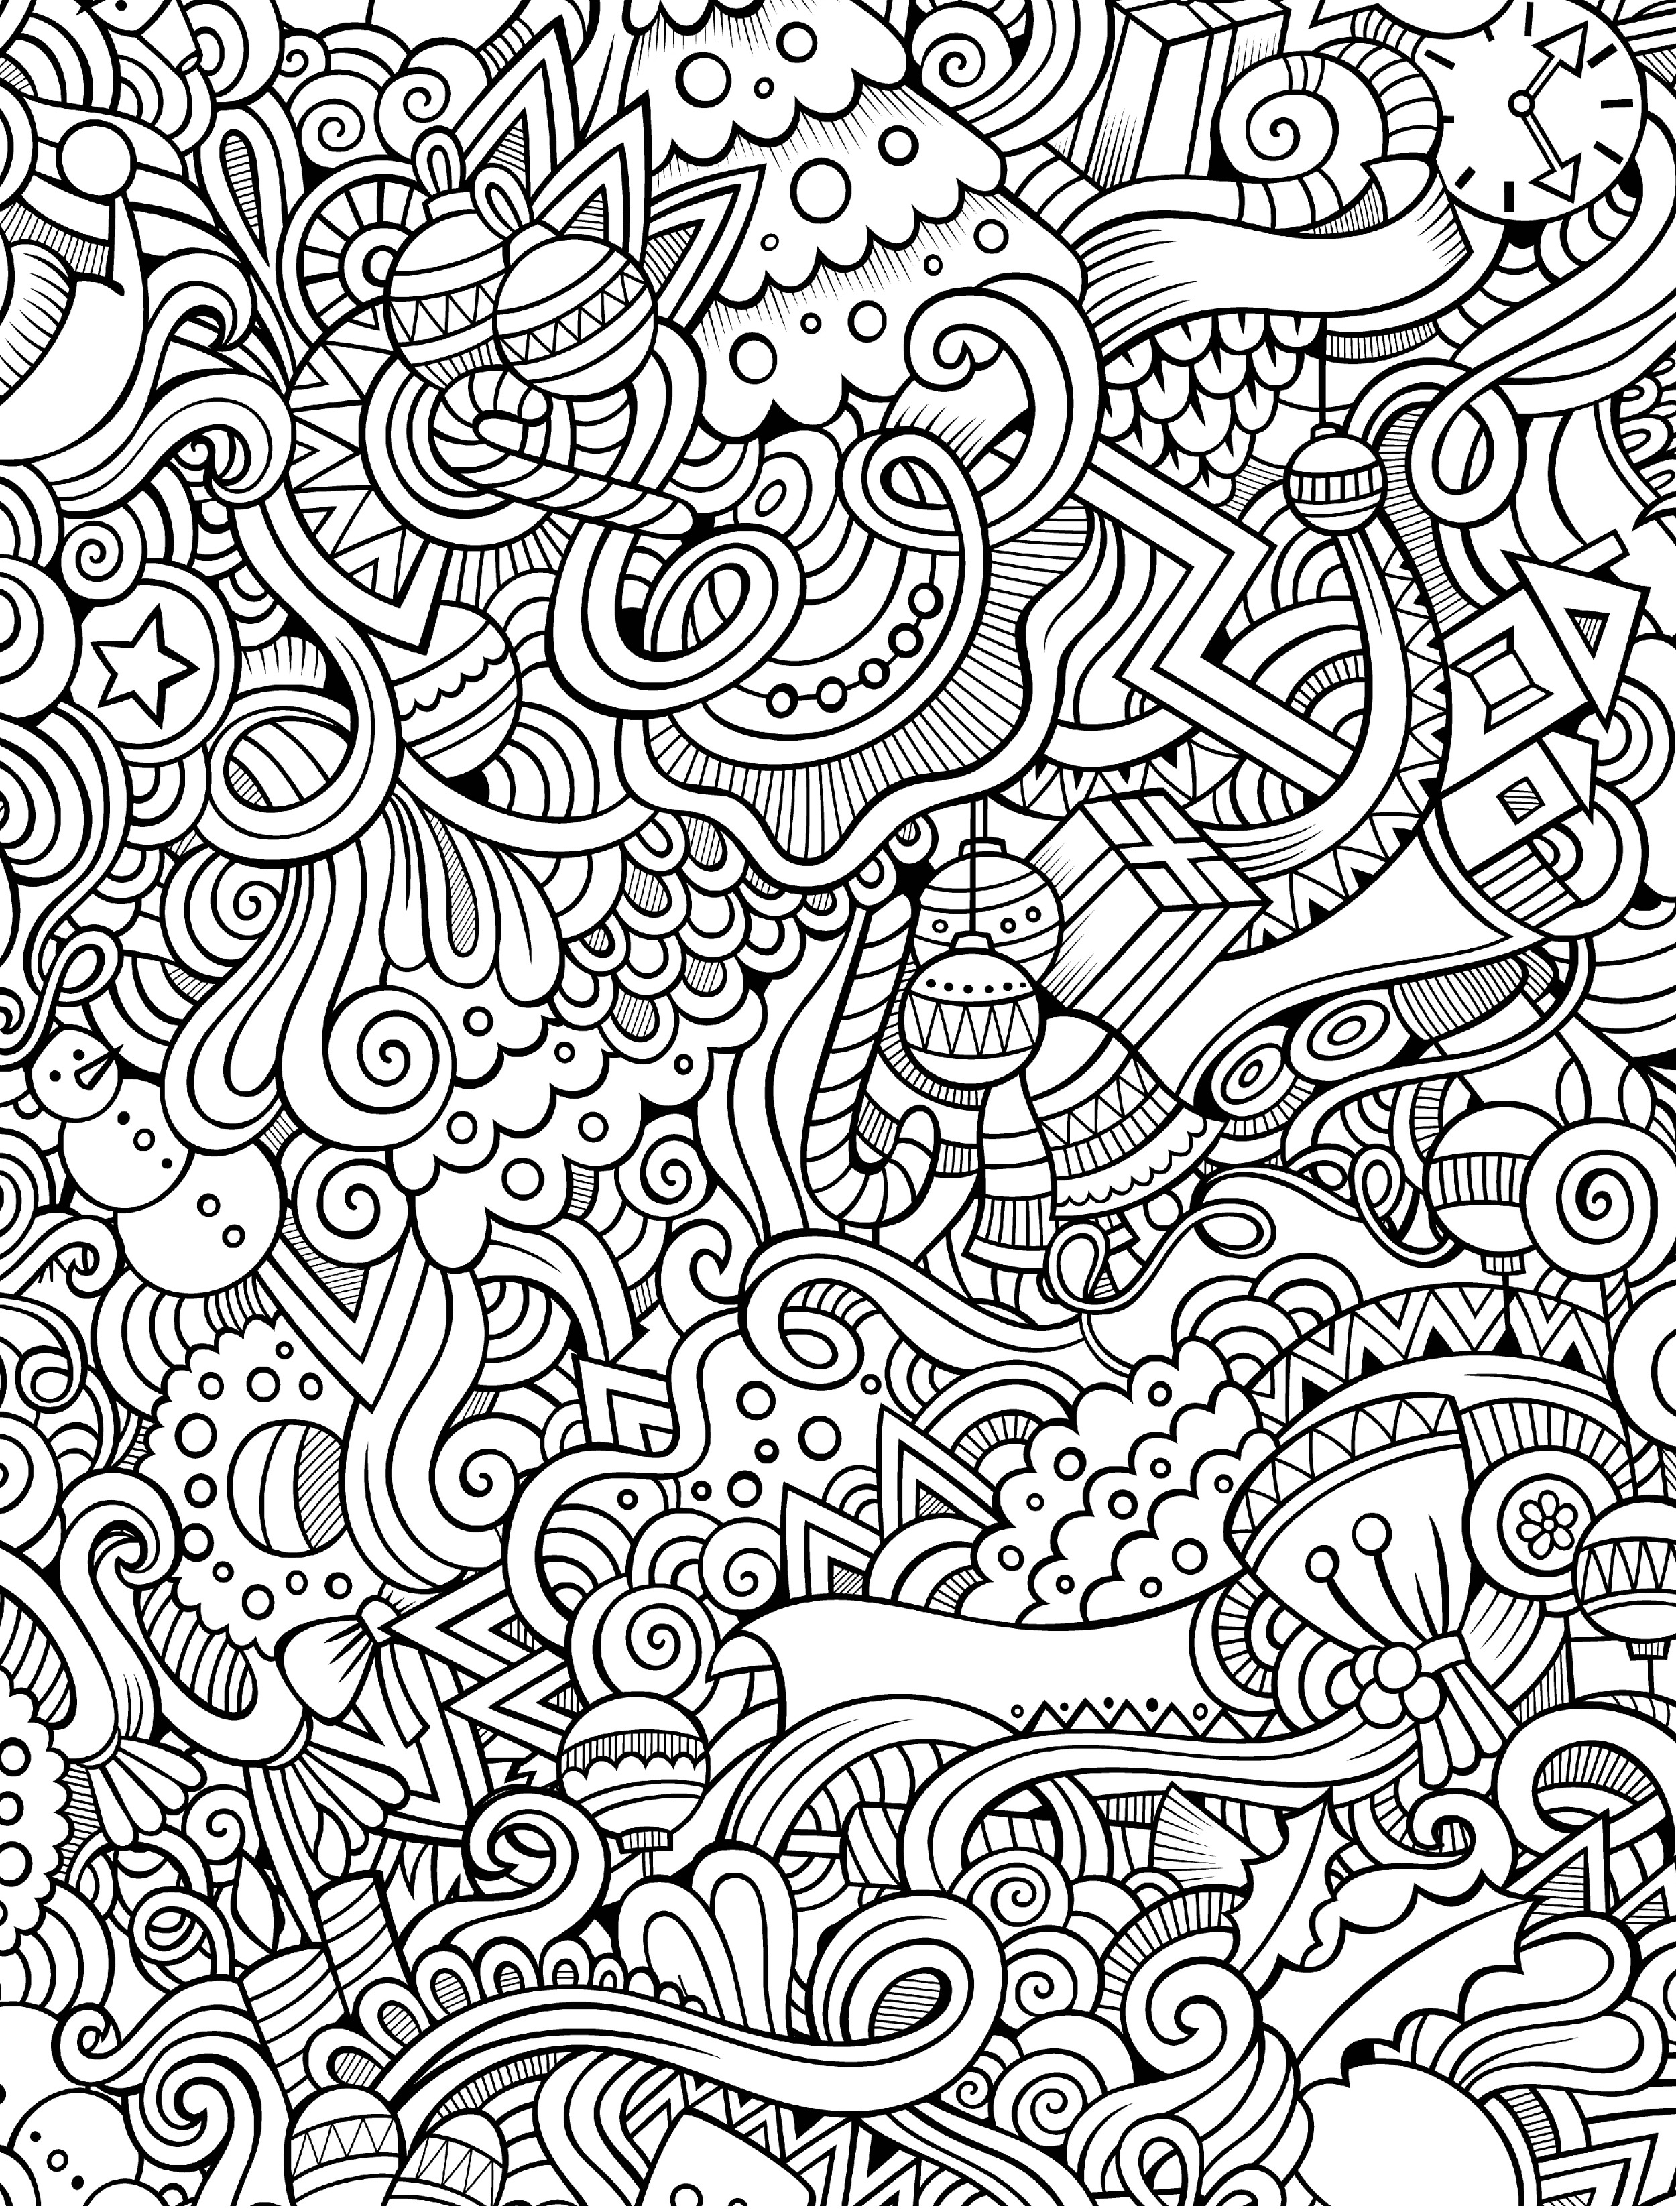 - Free Downloadable Coloring Pages Weird Free Downloadable Coloring